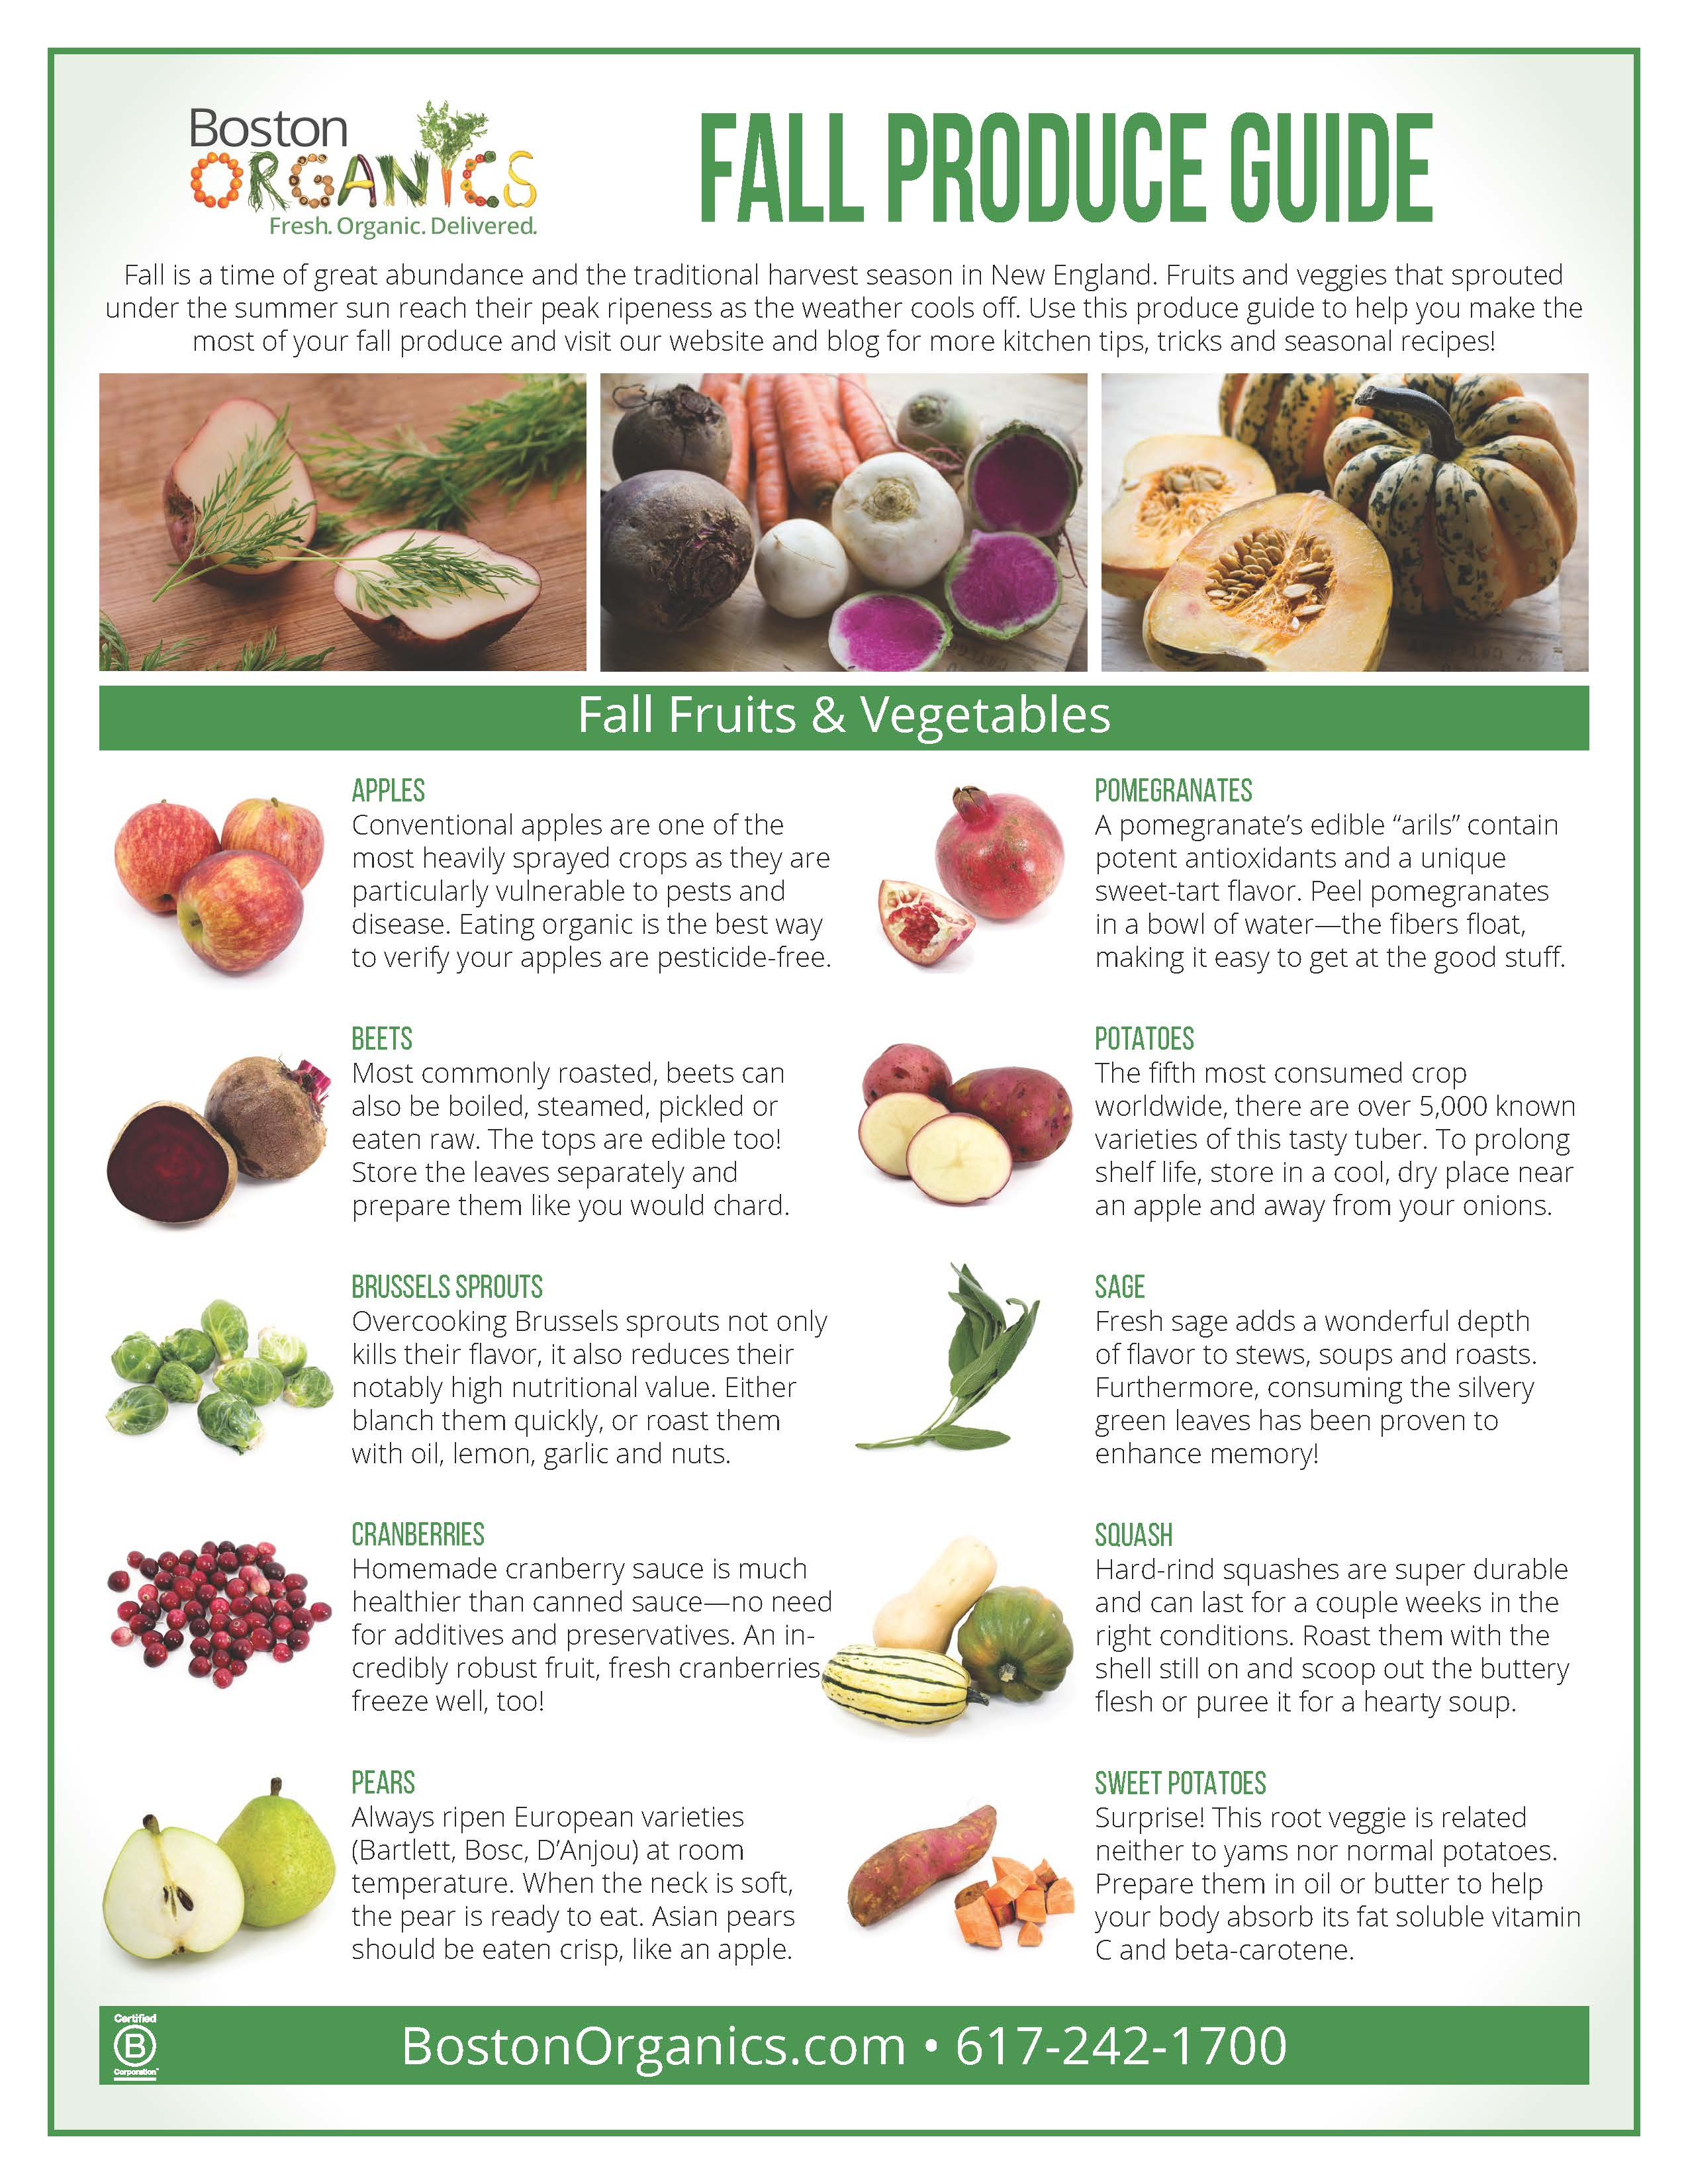 2017 Fall Produce Guide_1_Page_1.jpg